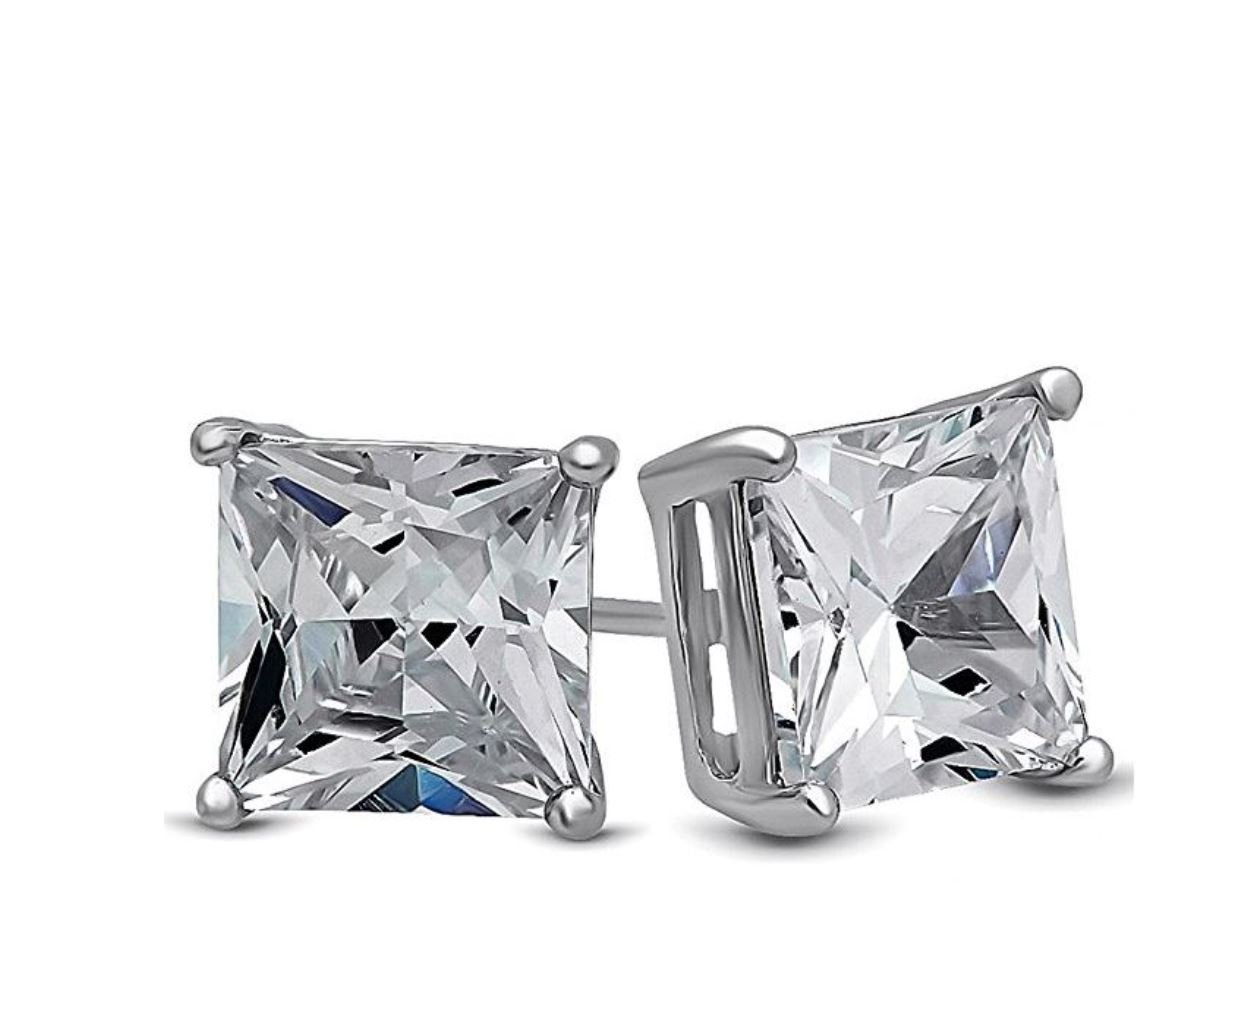 Surgical Stainless Steel Studs Earrings Men Women Girls Boys Square Princess Cut Basket Setting Cubic Zirconia Hypoallergenic Earrings WITH A FREE GIFT ROUND STUDS EARRINGS (6 MM)